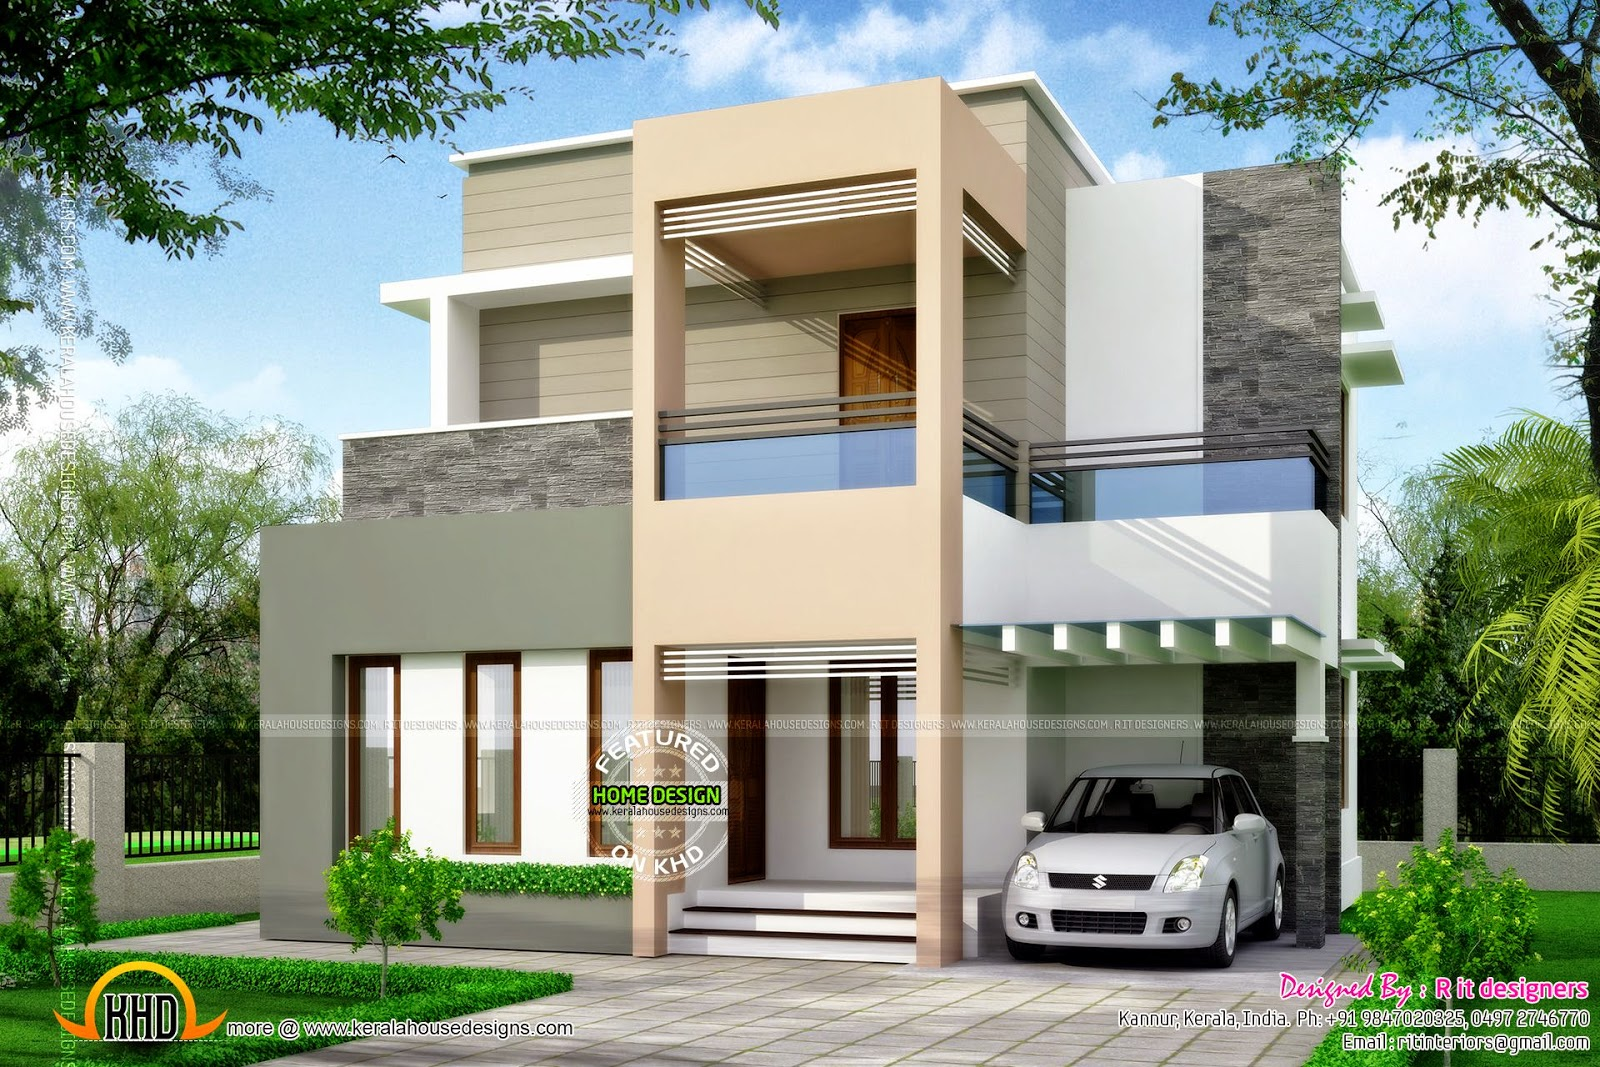 Home Plans With Apartments Attached December 2014 Kerala Home Design And Floor Plans